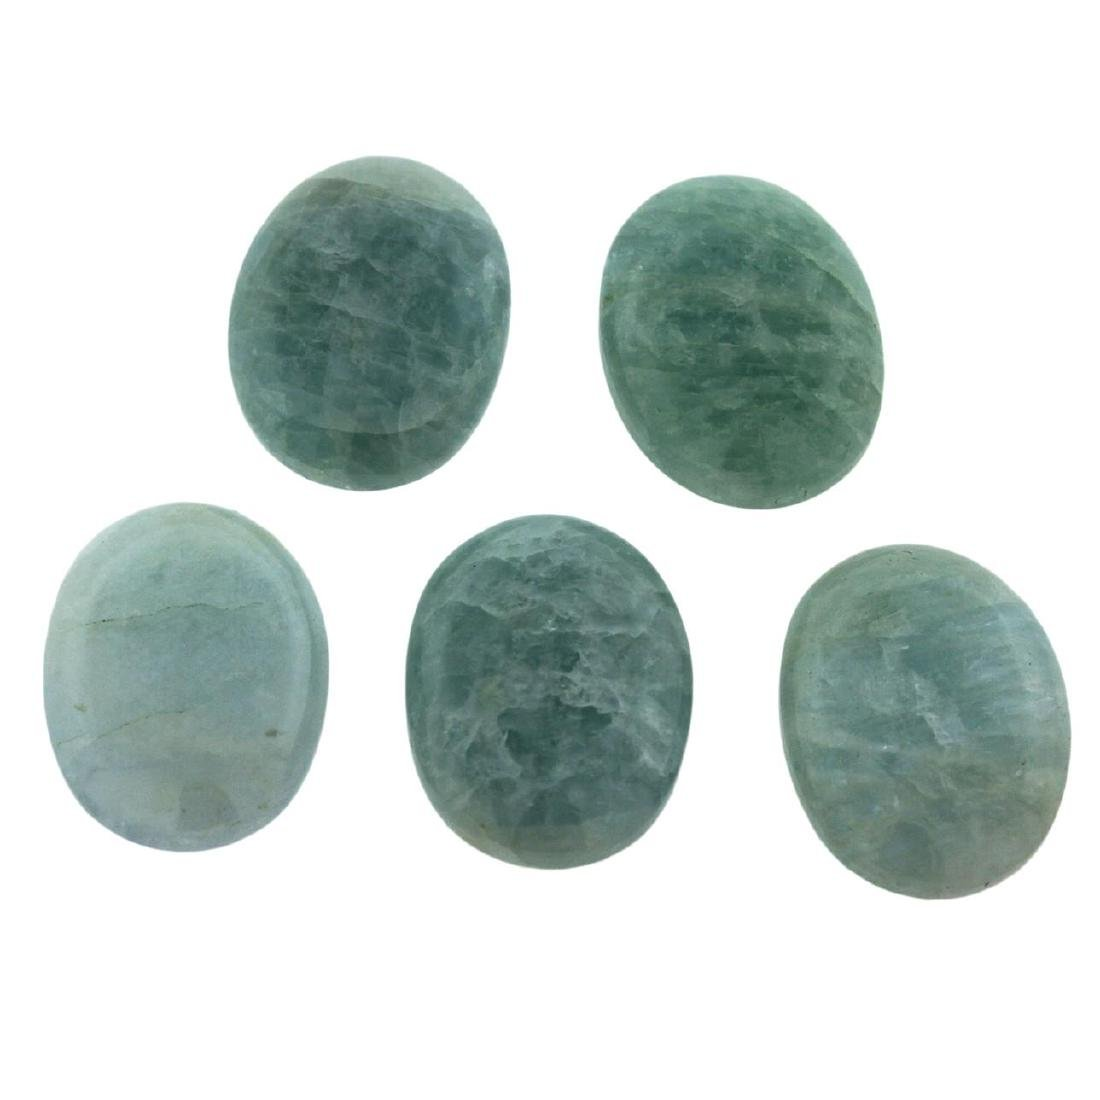 63.12 ctw Oval Cut Oval Cabochon Cut Natural Aquamarine